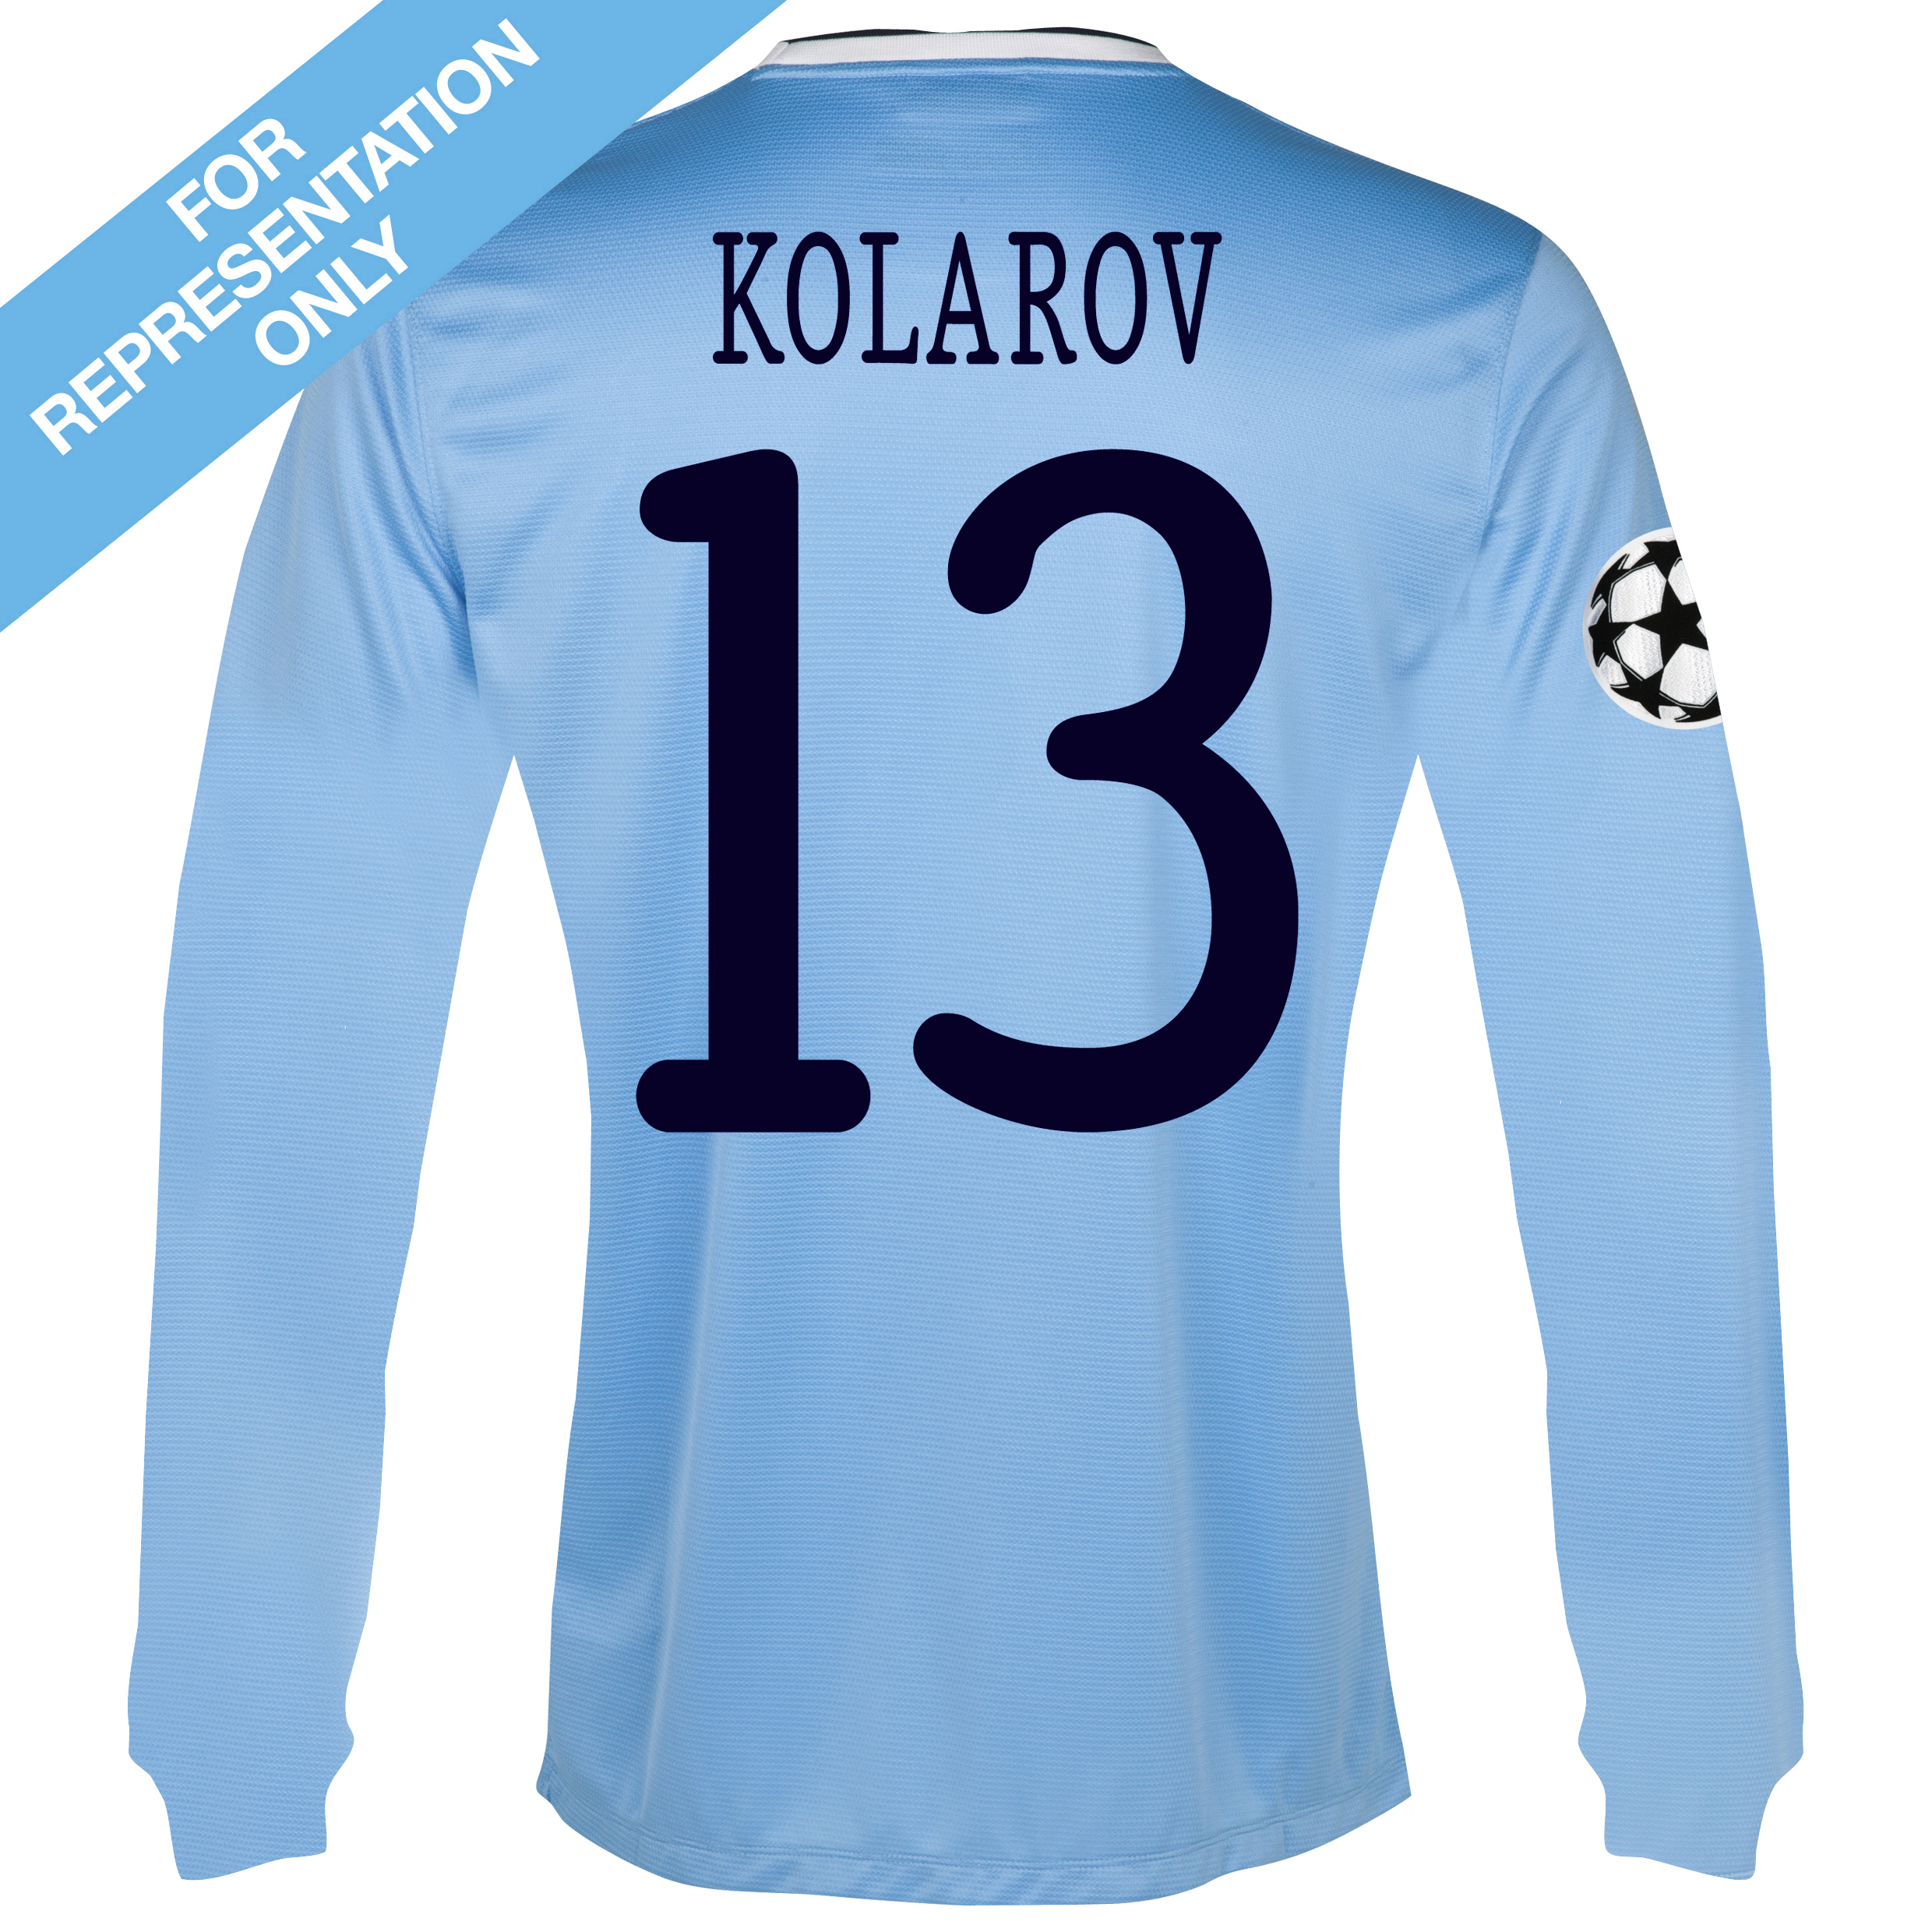 Manchester City Home Shirt 2013/14 - Long Sleeved with Kolarov 13 printing